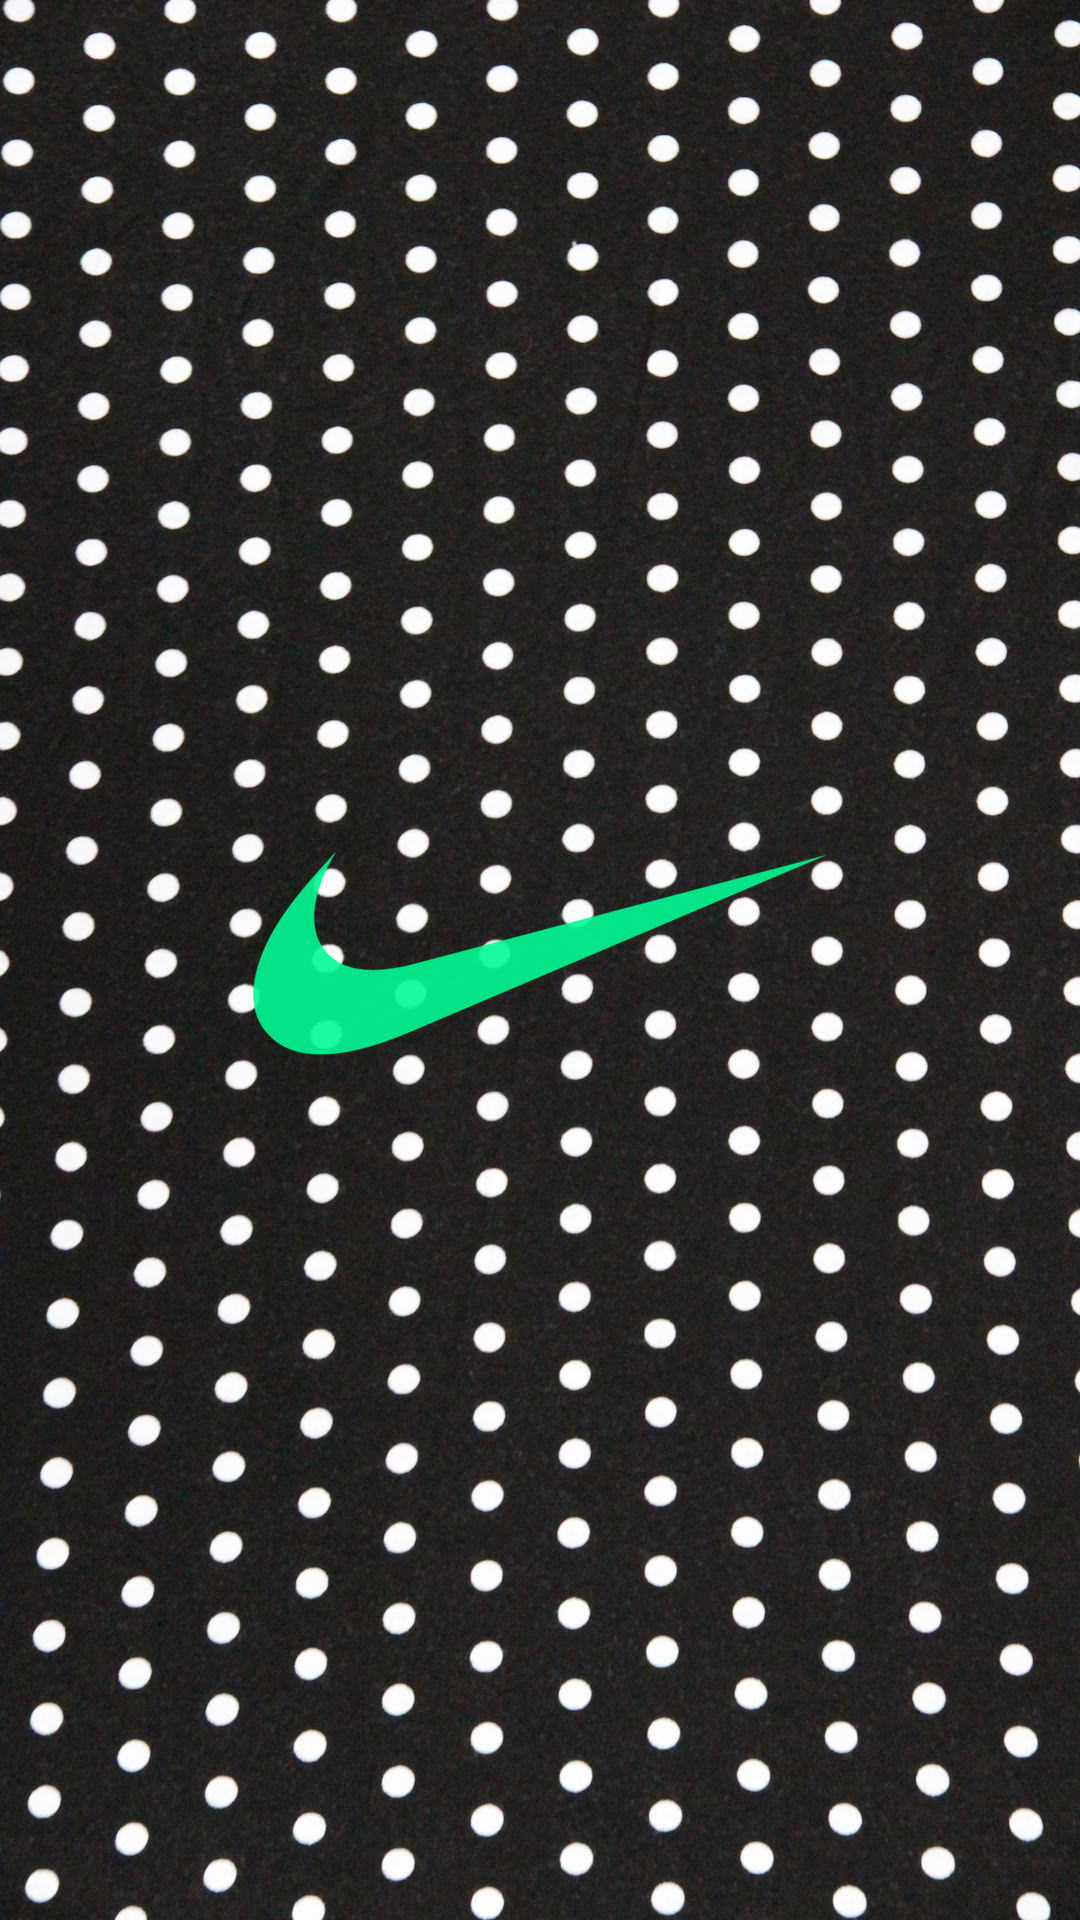 nike30 - 37 NIKE HQ Smartphone Wallpaper Collection